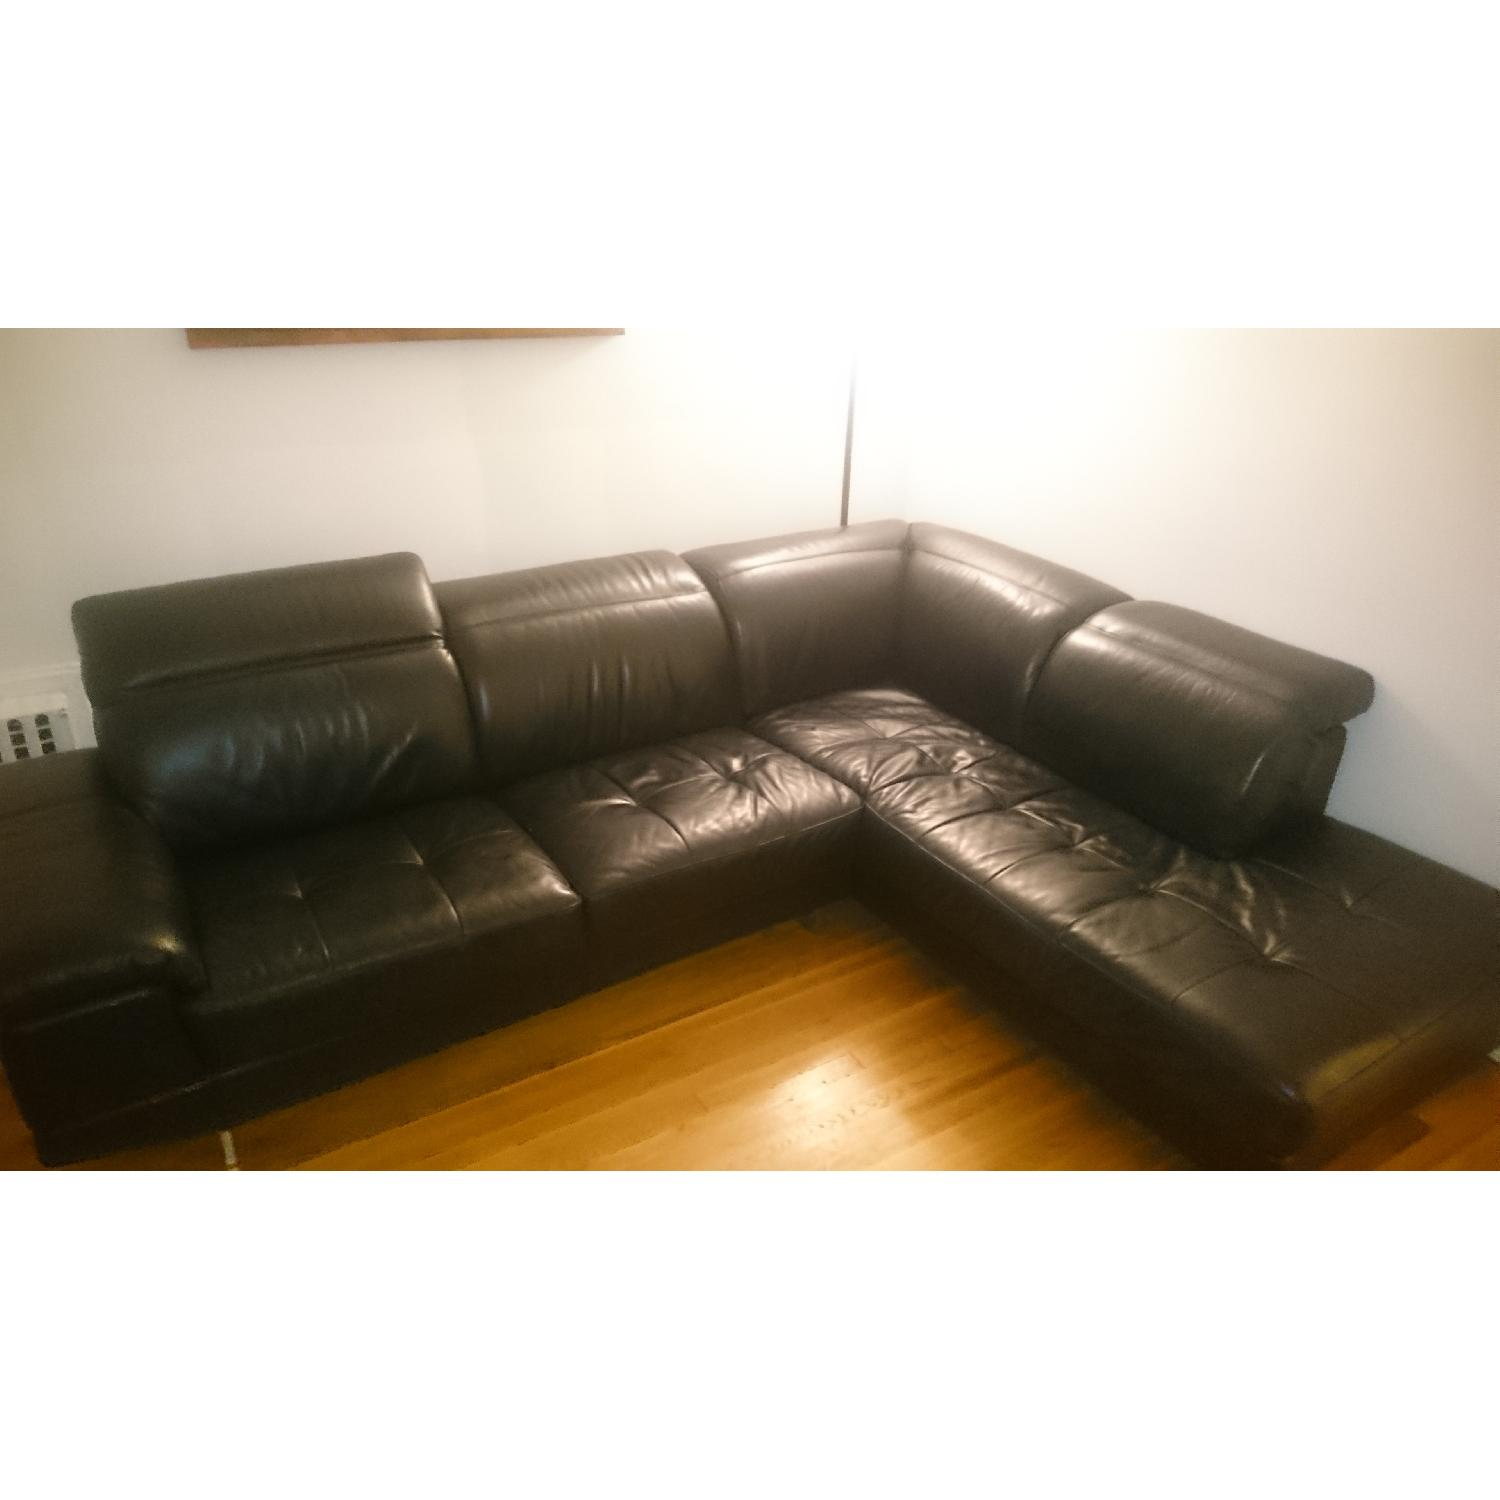 J&M Furniture Black Italian Leather Sectional Couch - image-1